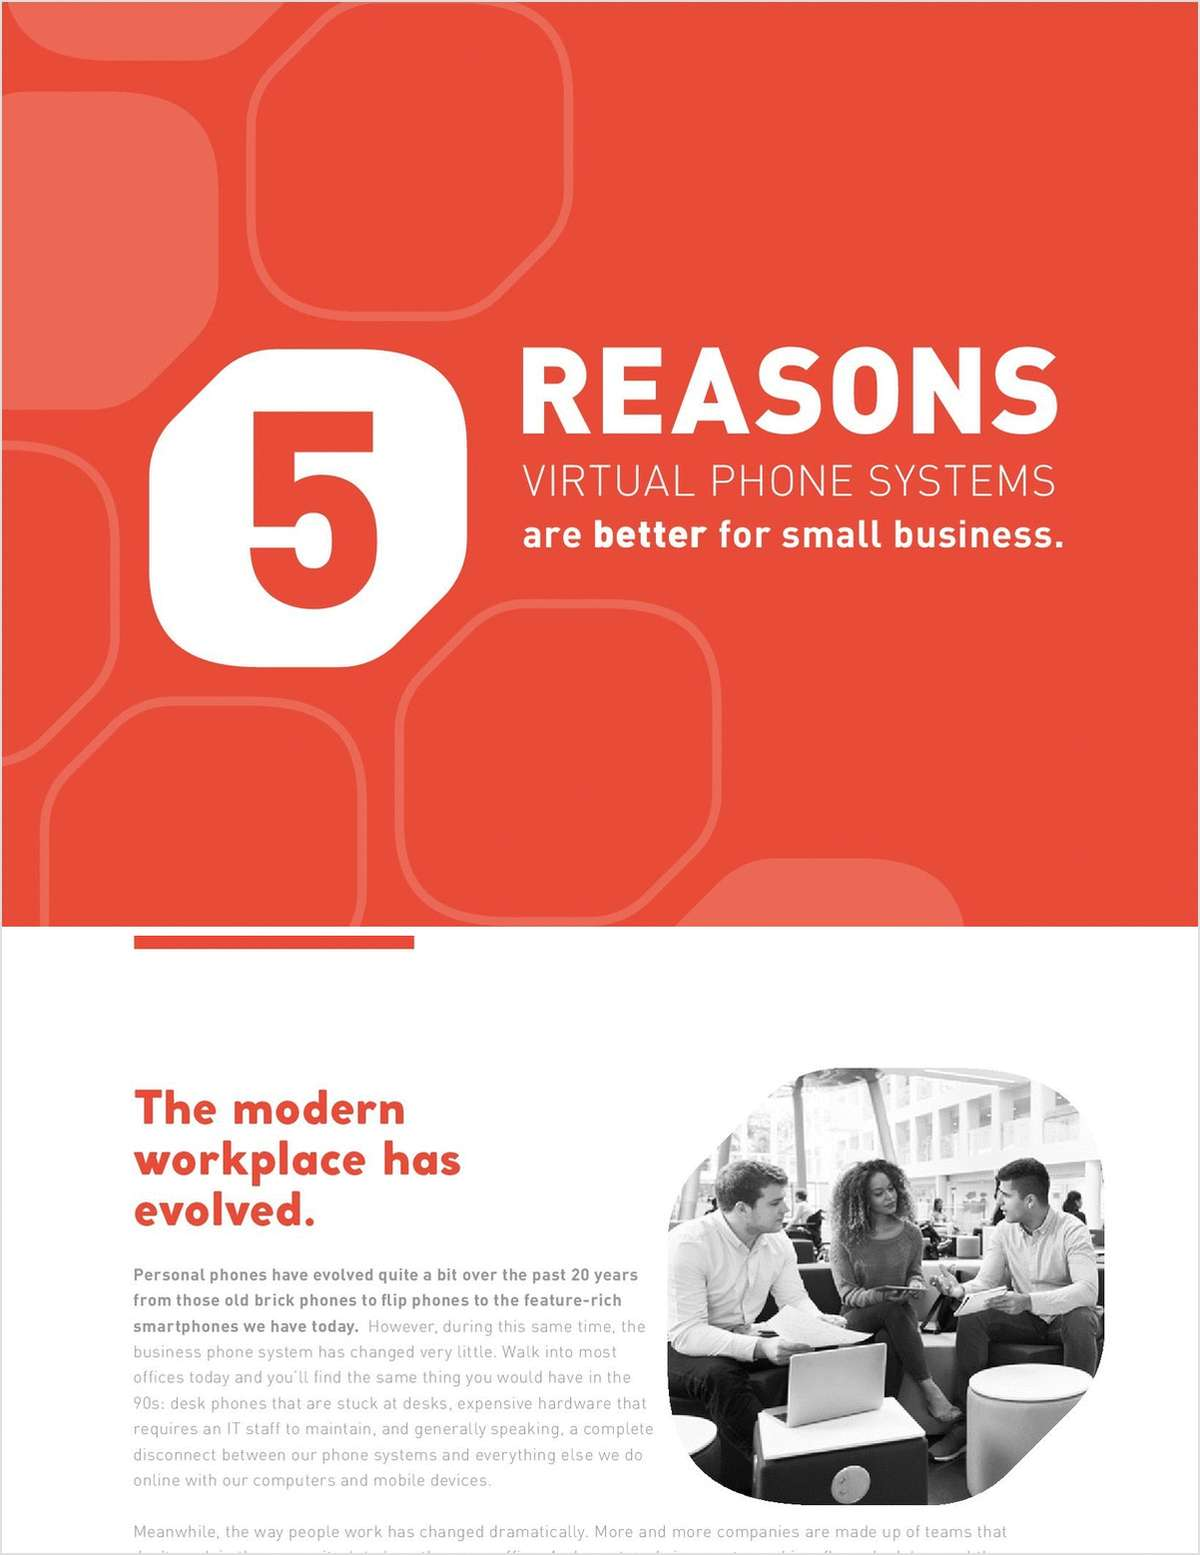 5 Reasons Virtual Phone Systems are Better for Small Business